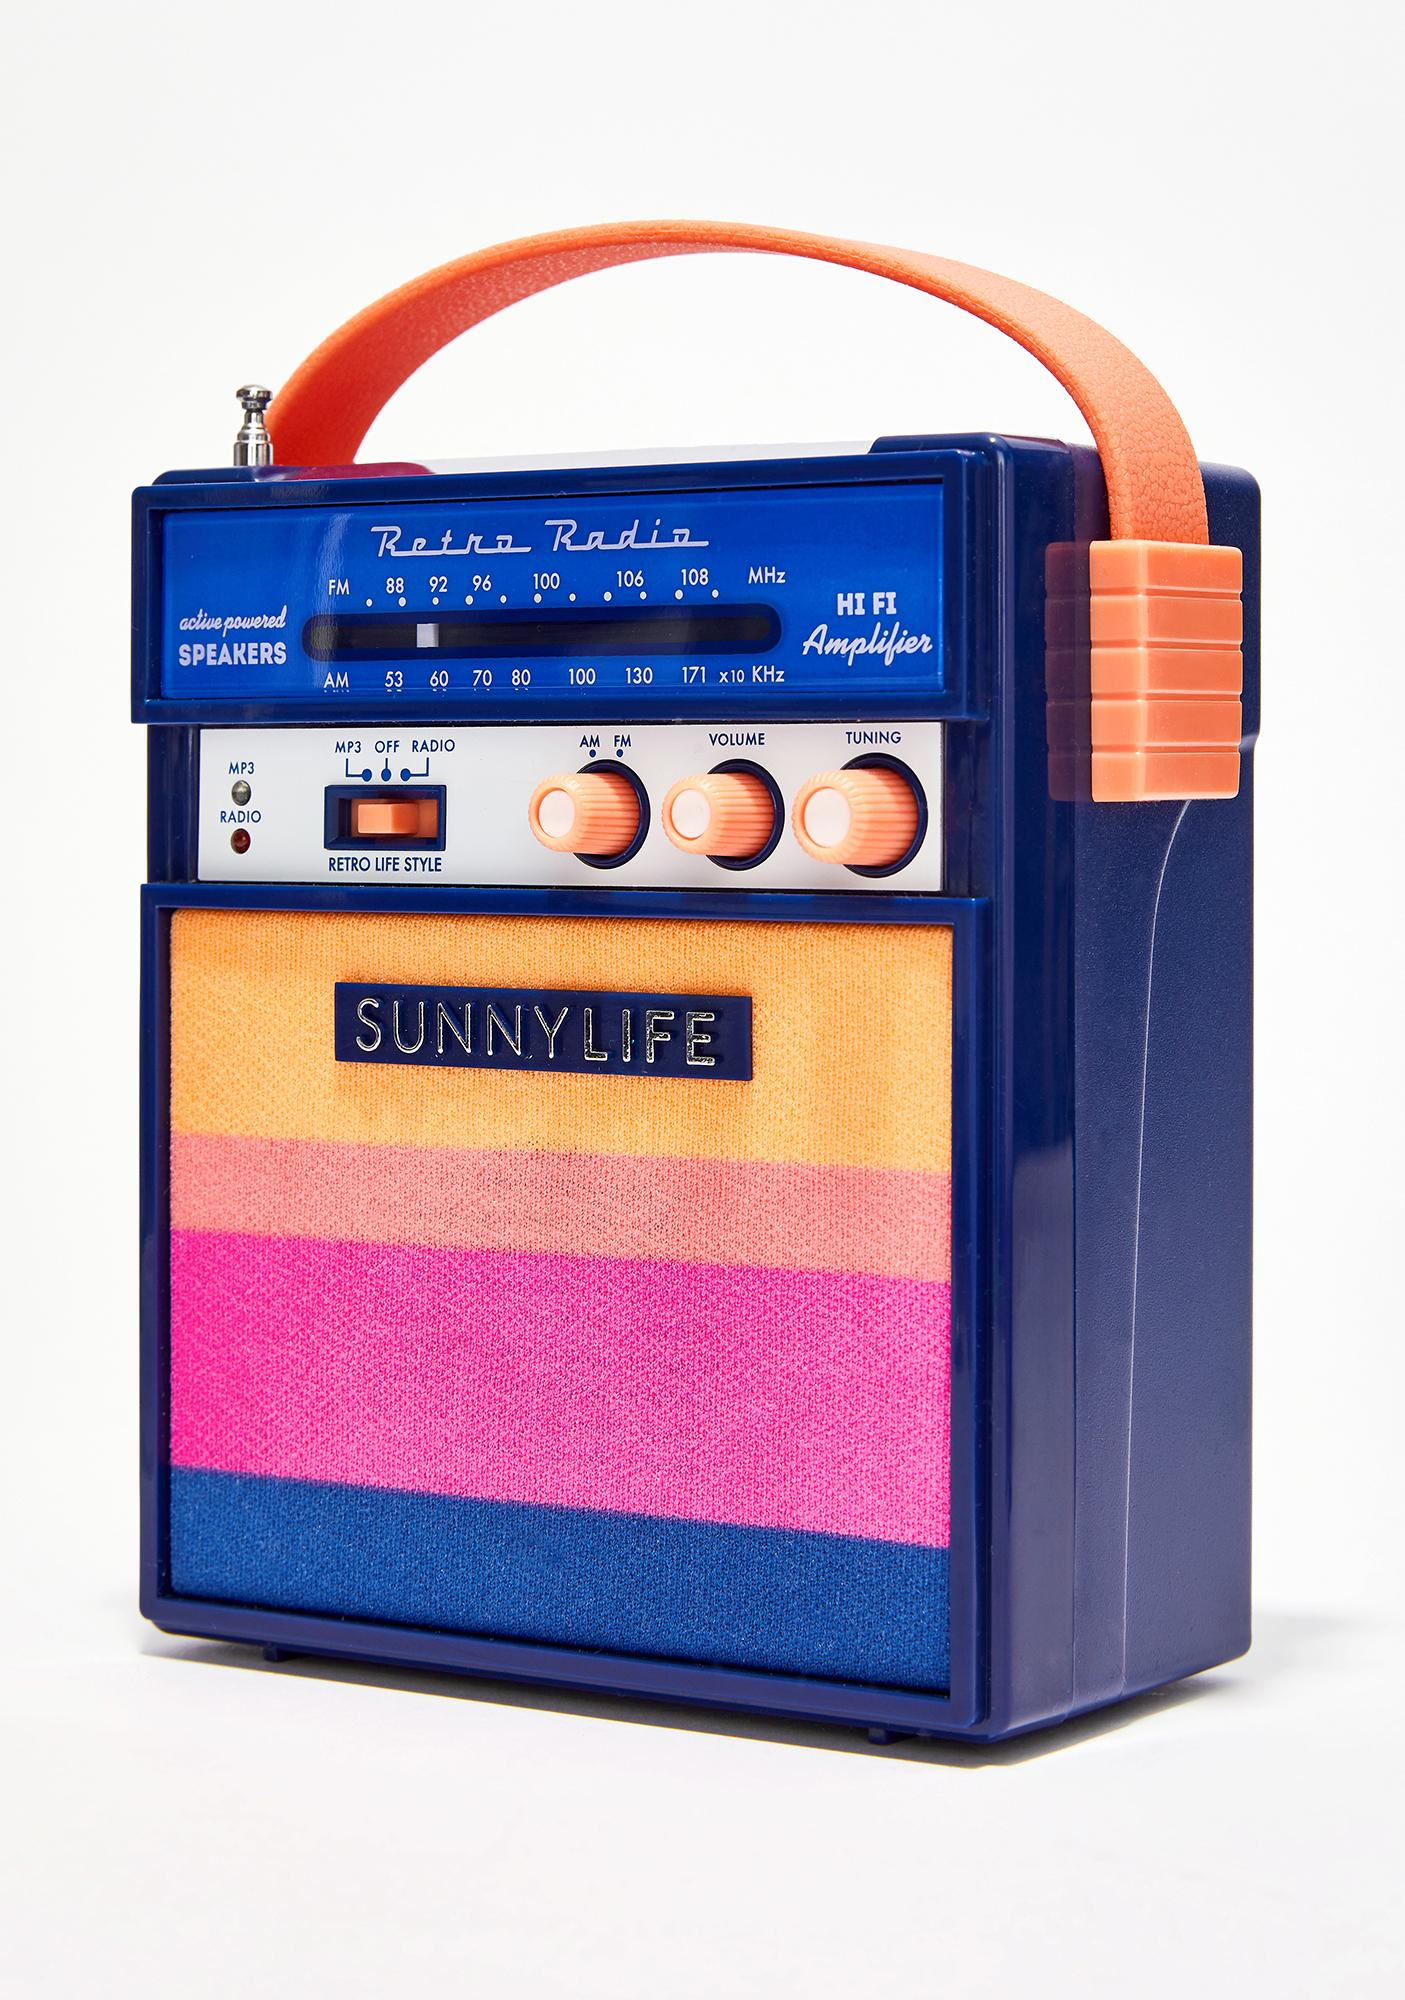 Trippin' On Tropical Portable Speaker